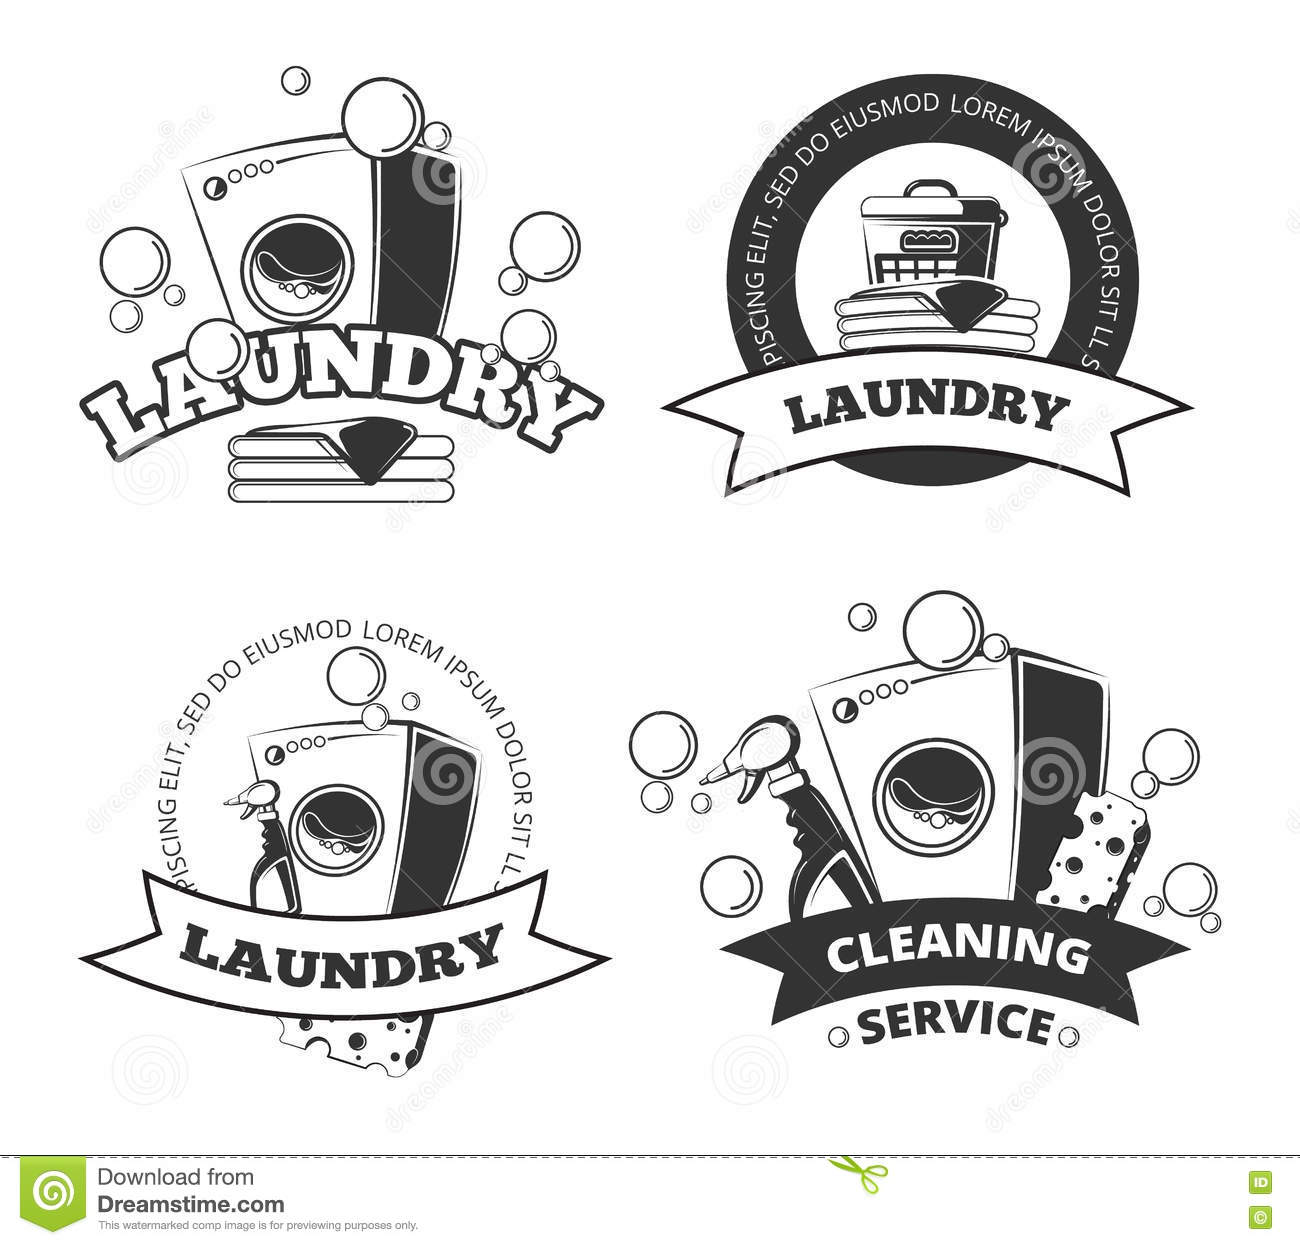 Vintage laundry service dry clean vector labels, emblems, logos, badges set